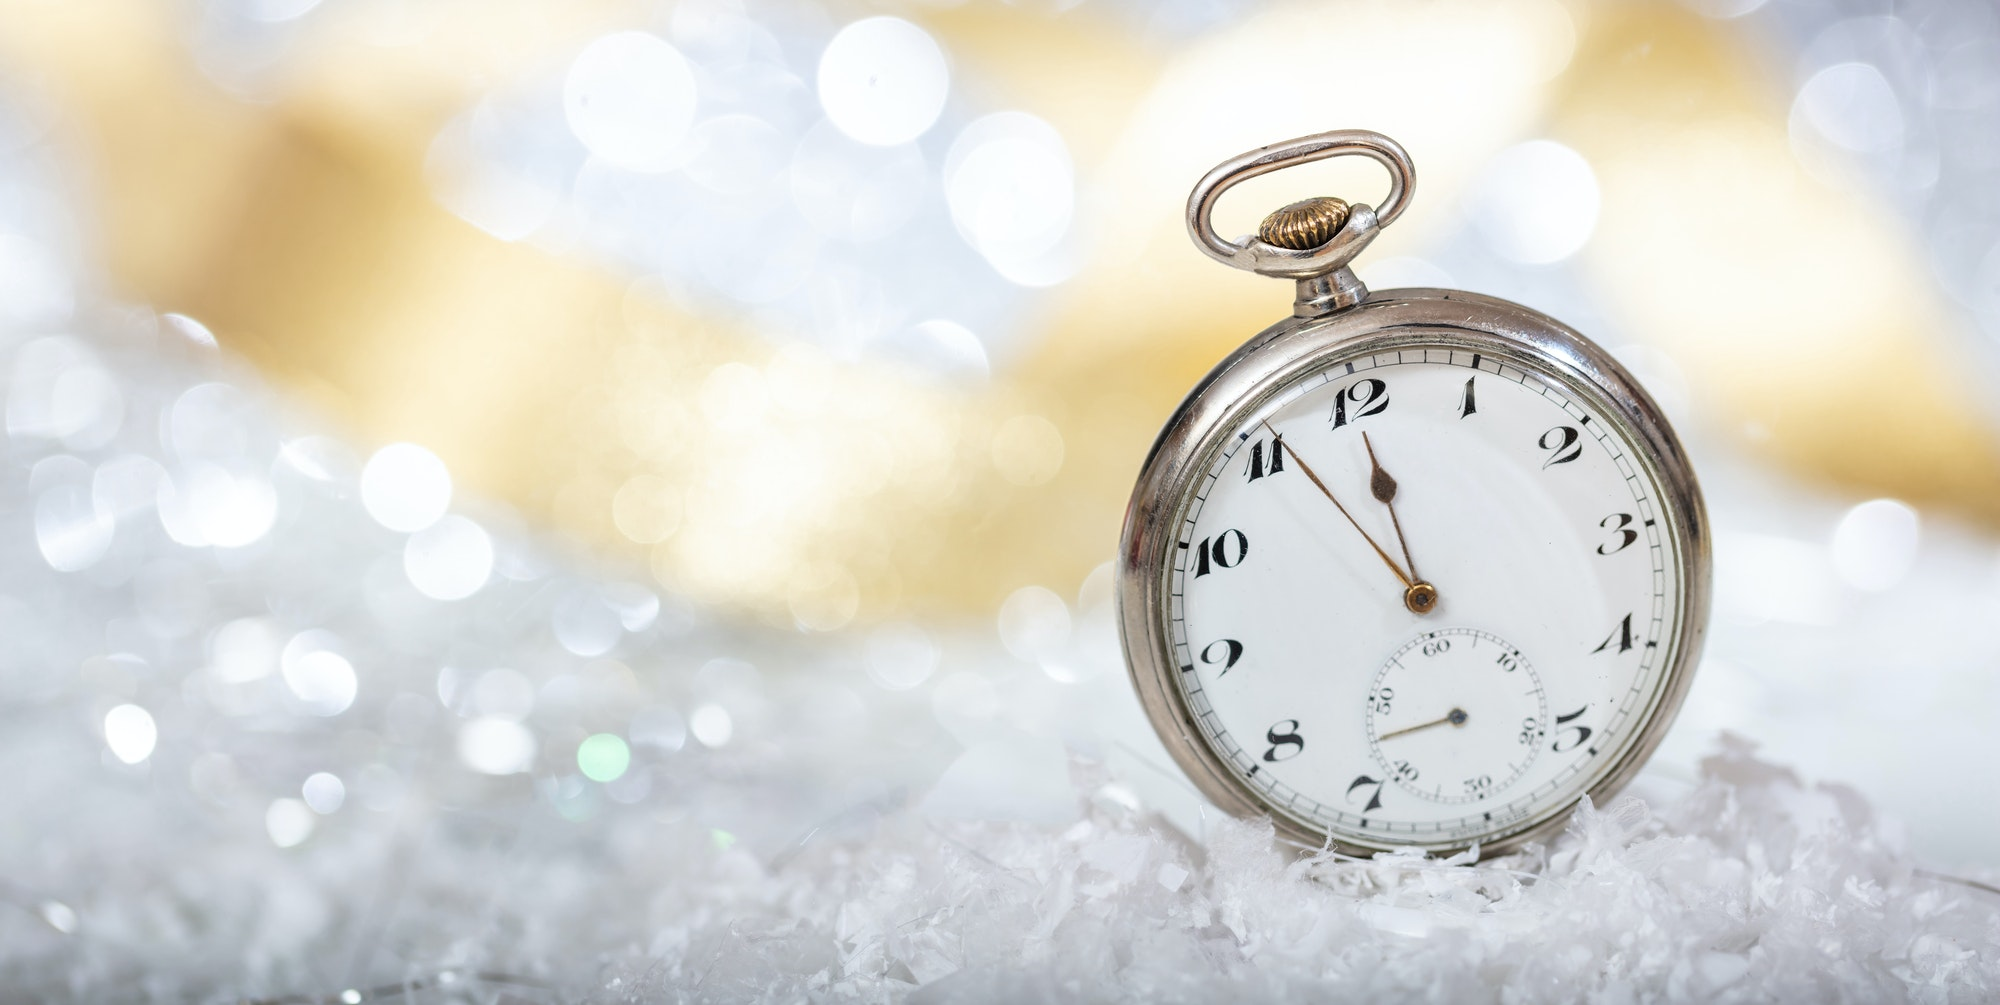 New Years eve. Minutes to midnight on an old pocket watch